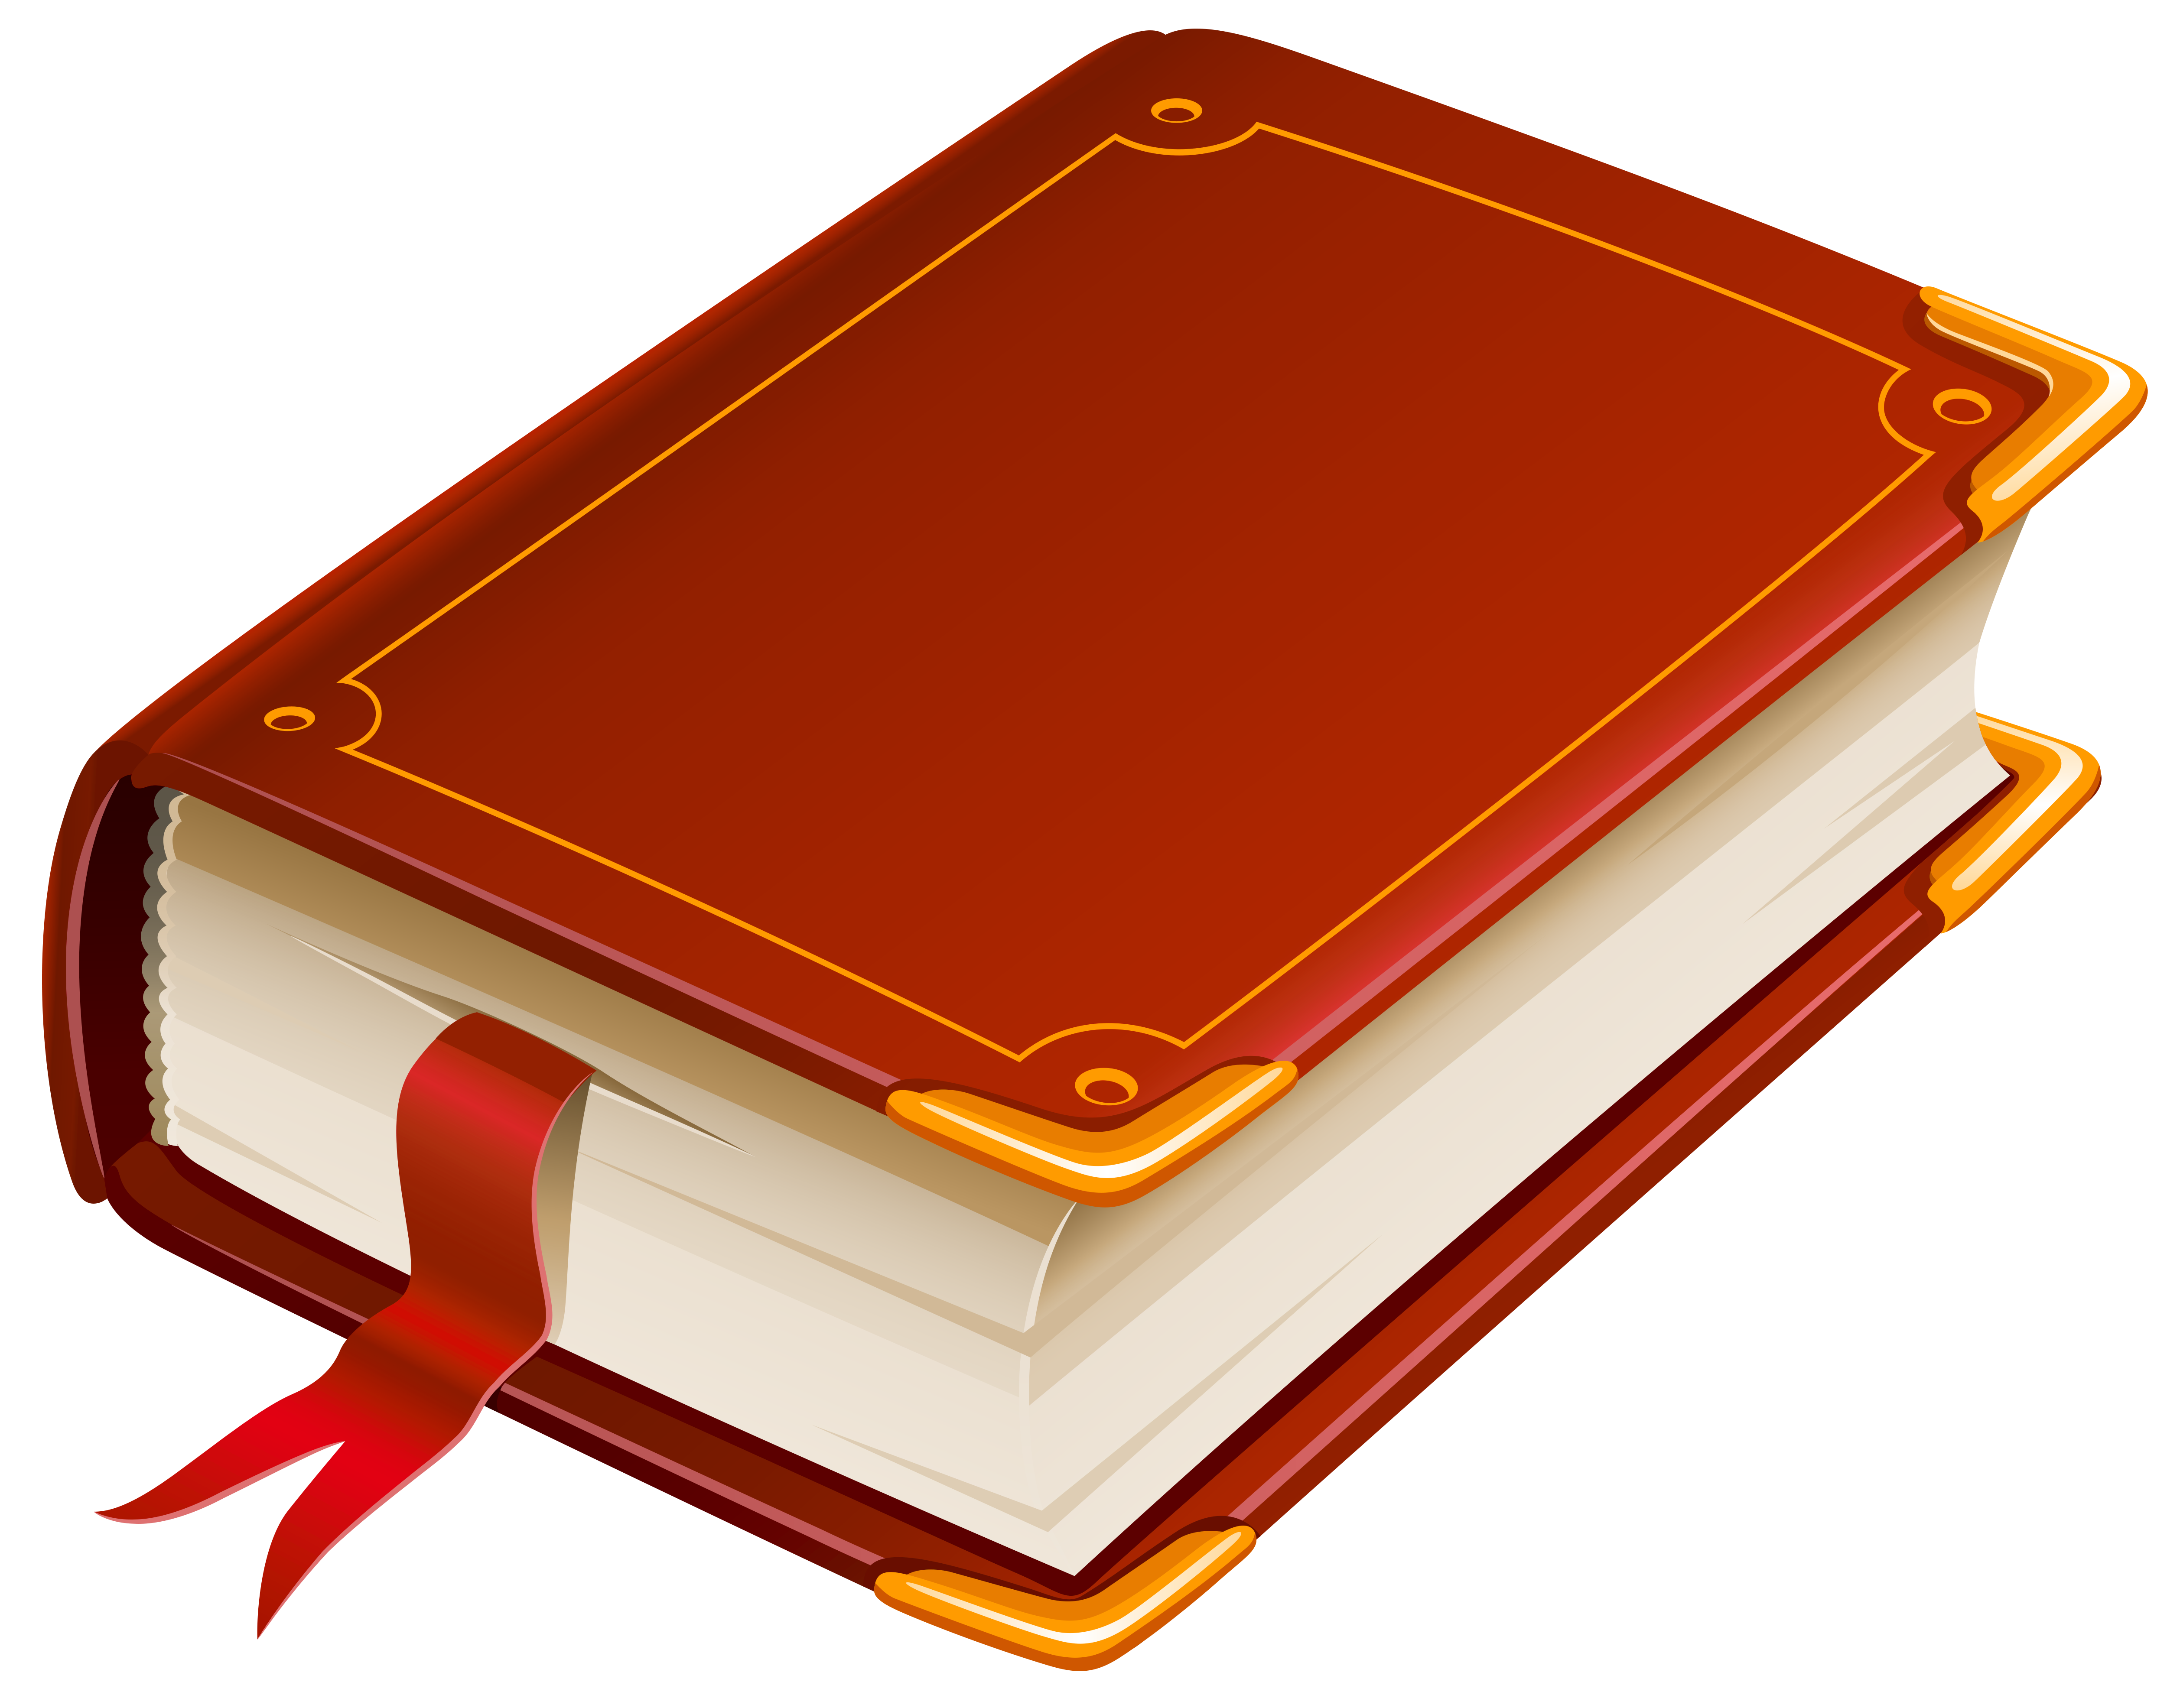 Books clipart png. Red book best web